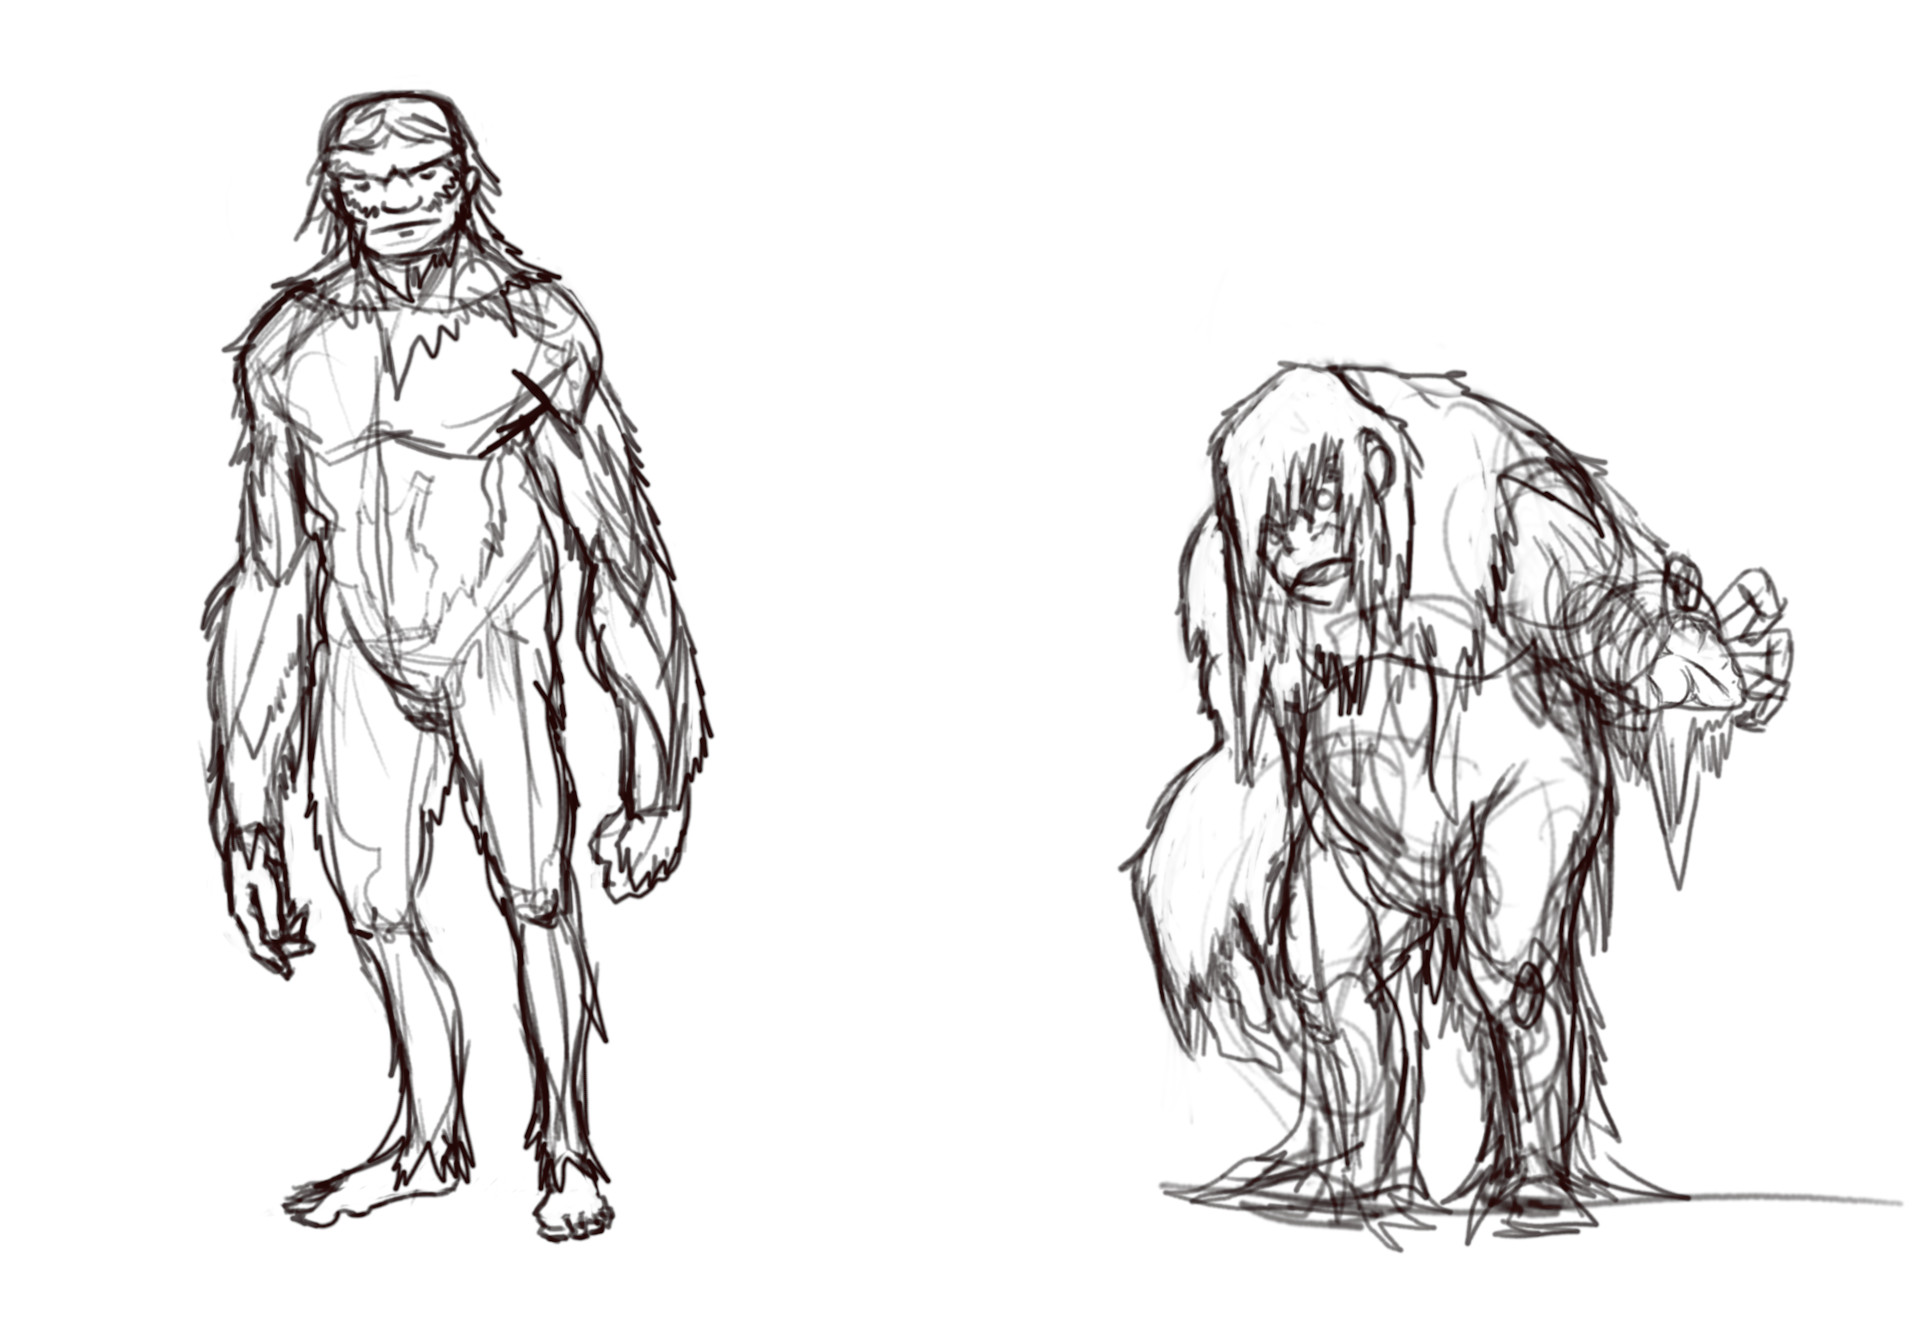 The first sketches for the Sasquatch and the Skunk Ape.